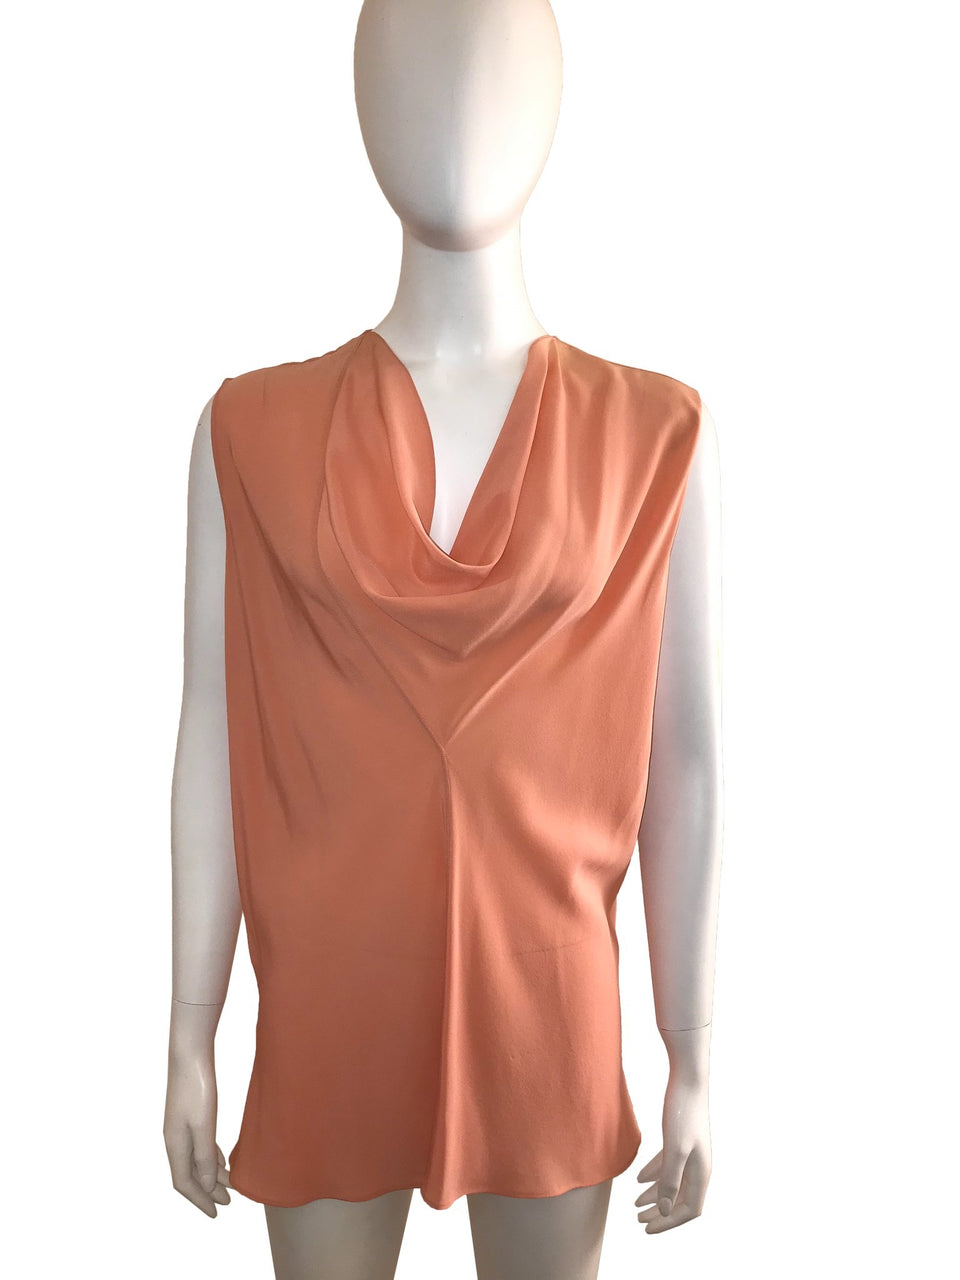 Sleeveless Blouse with Draped Neck